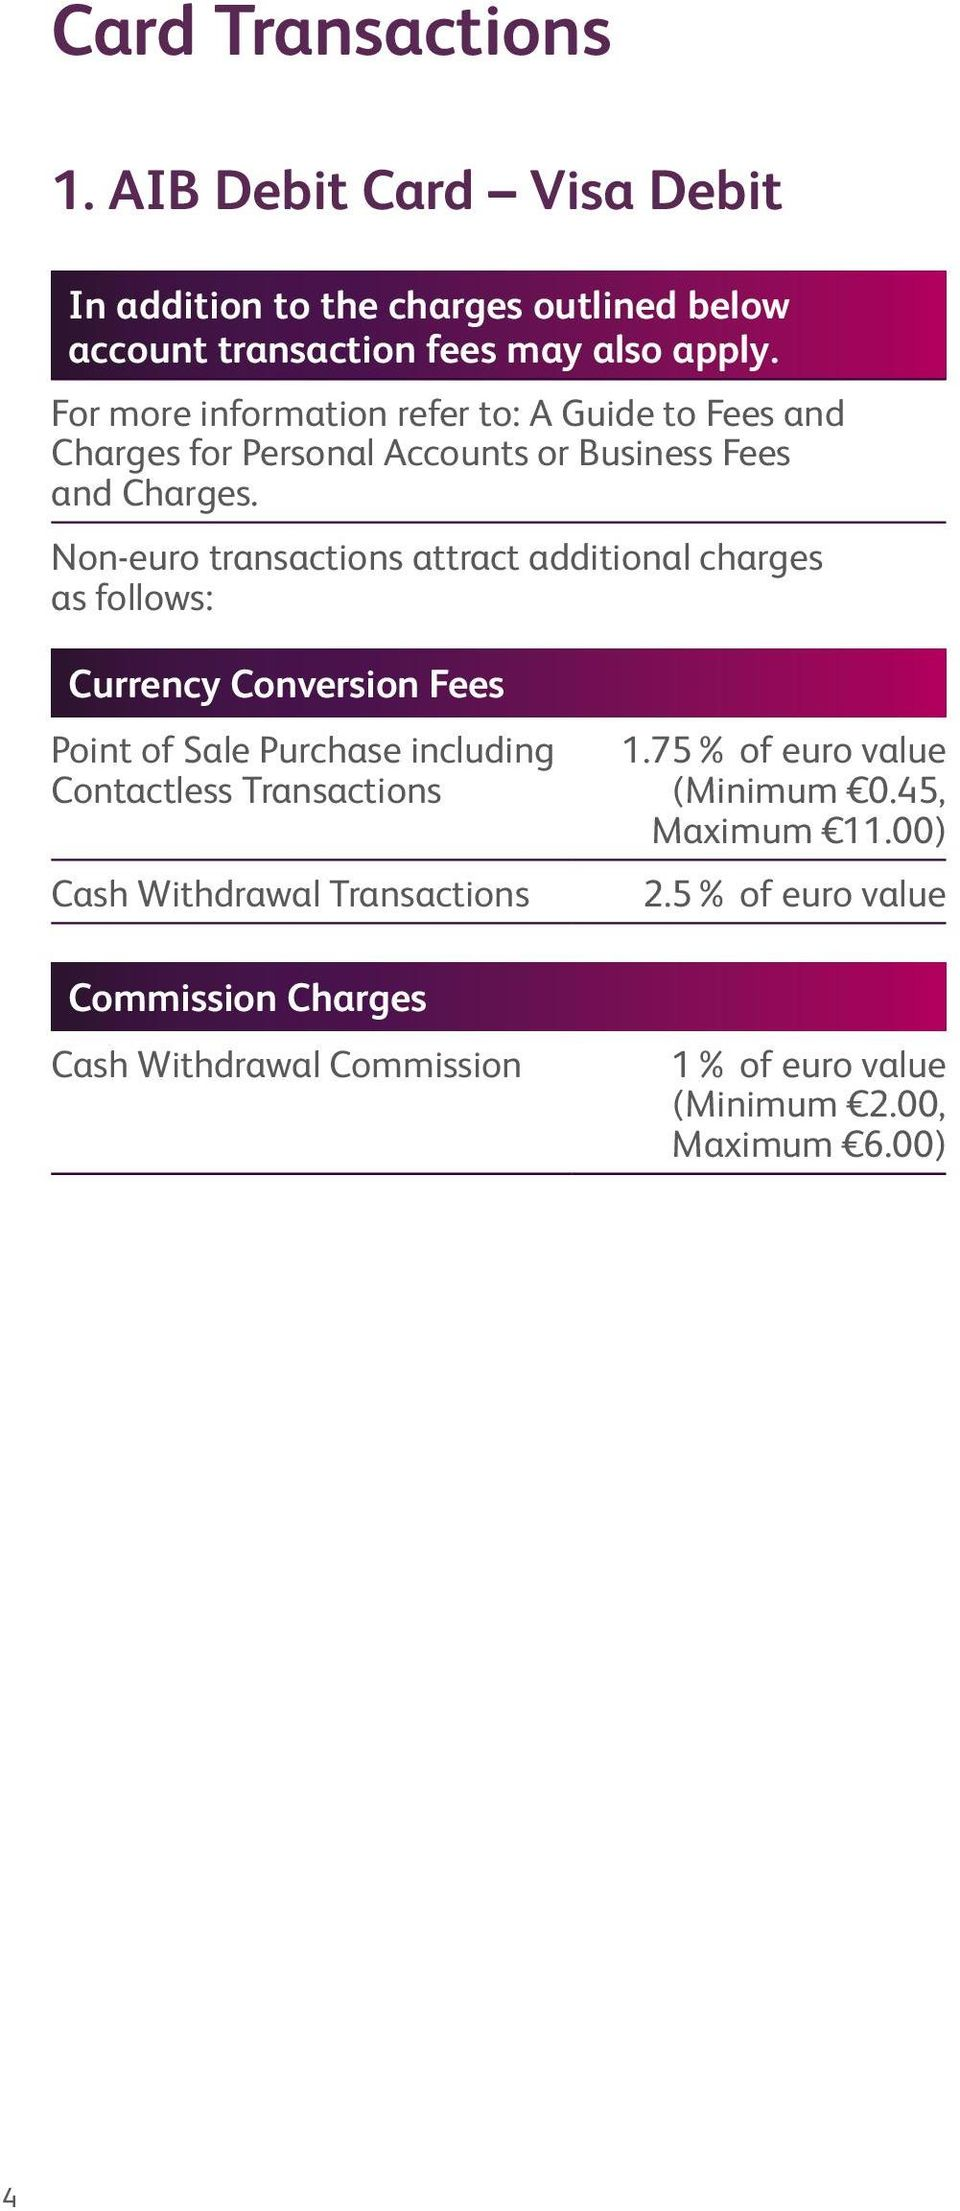 Non-euro transactions attract additional charges as follows: Currency Conversion Fees Point of Sale Purchase including Contactless